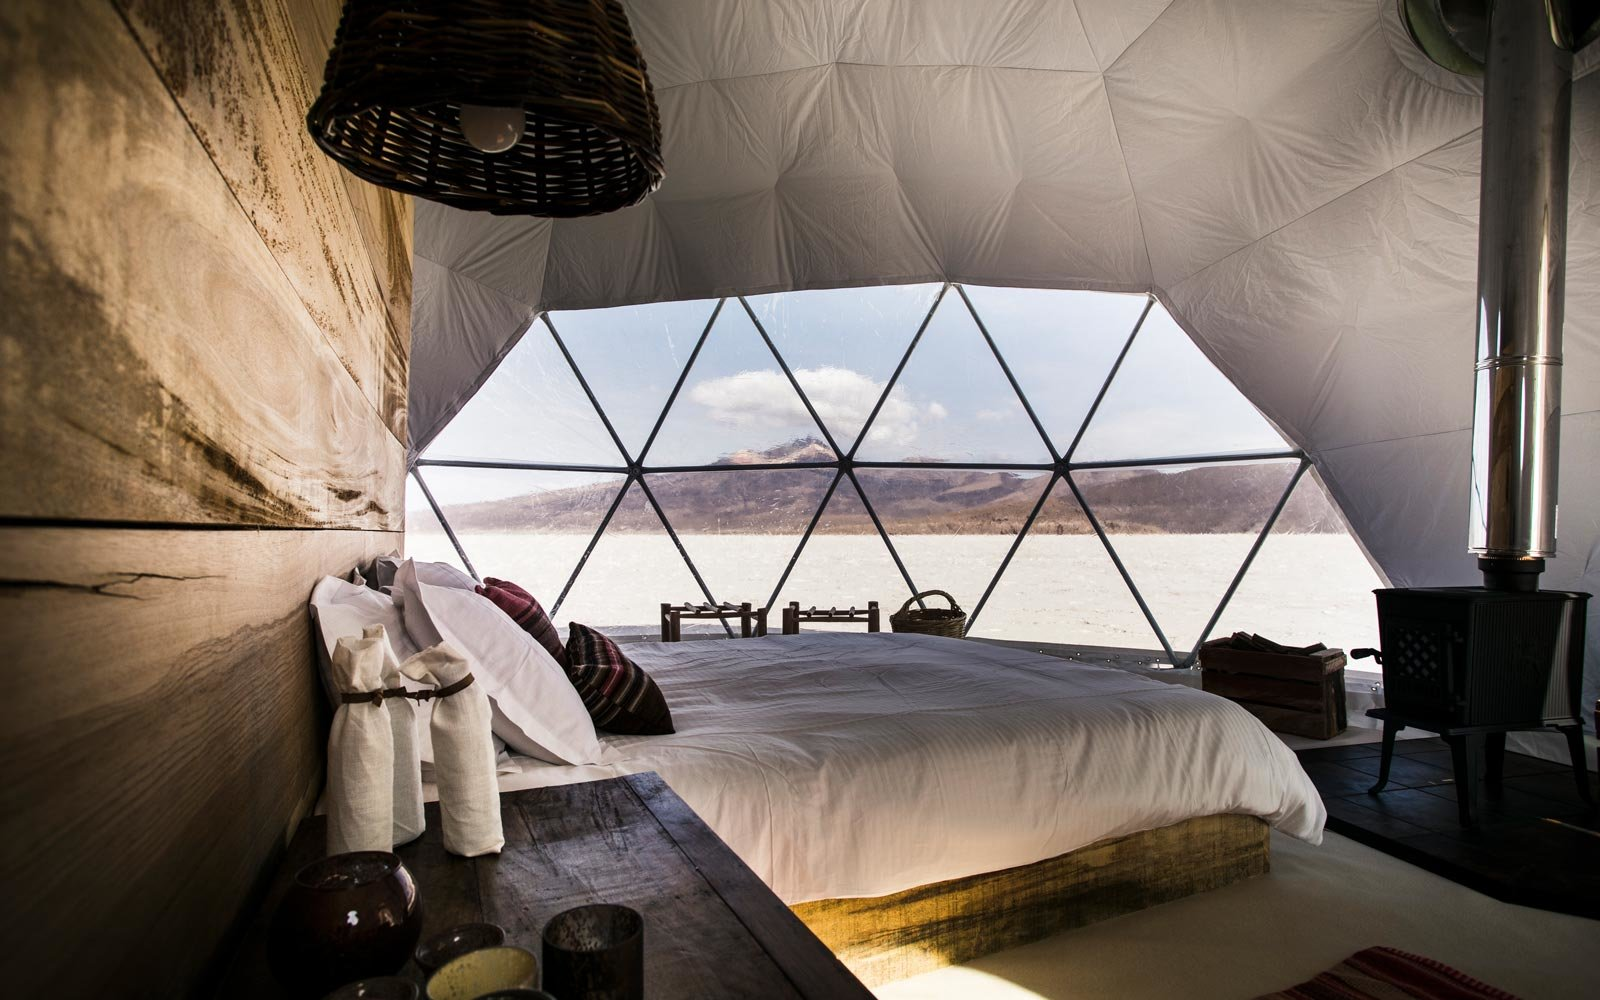 This New Stargazer Lodge in Bolivia Will Make You Feel Like You're Sleeping on a Space Station